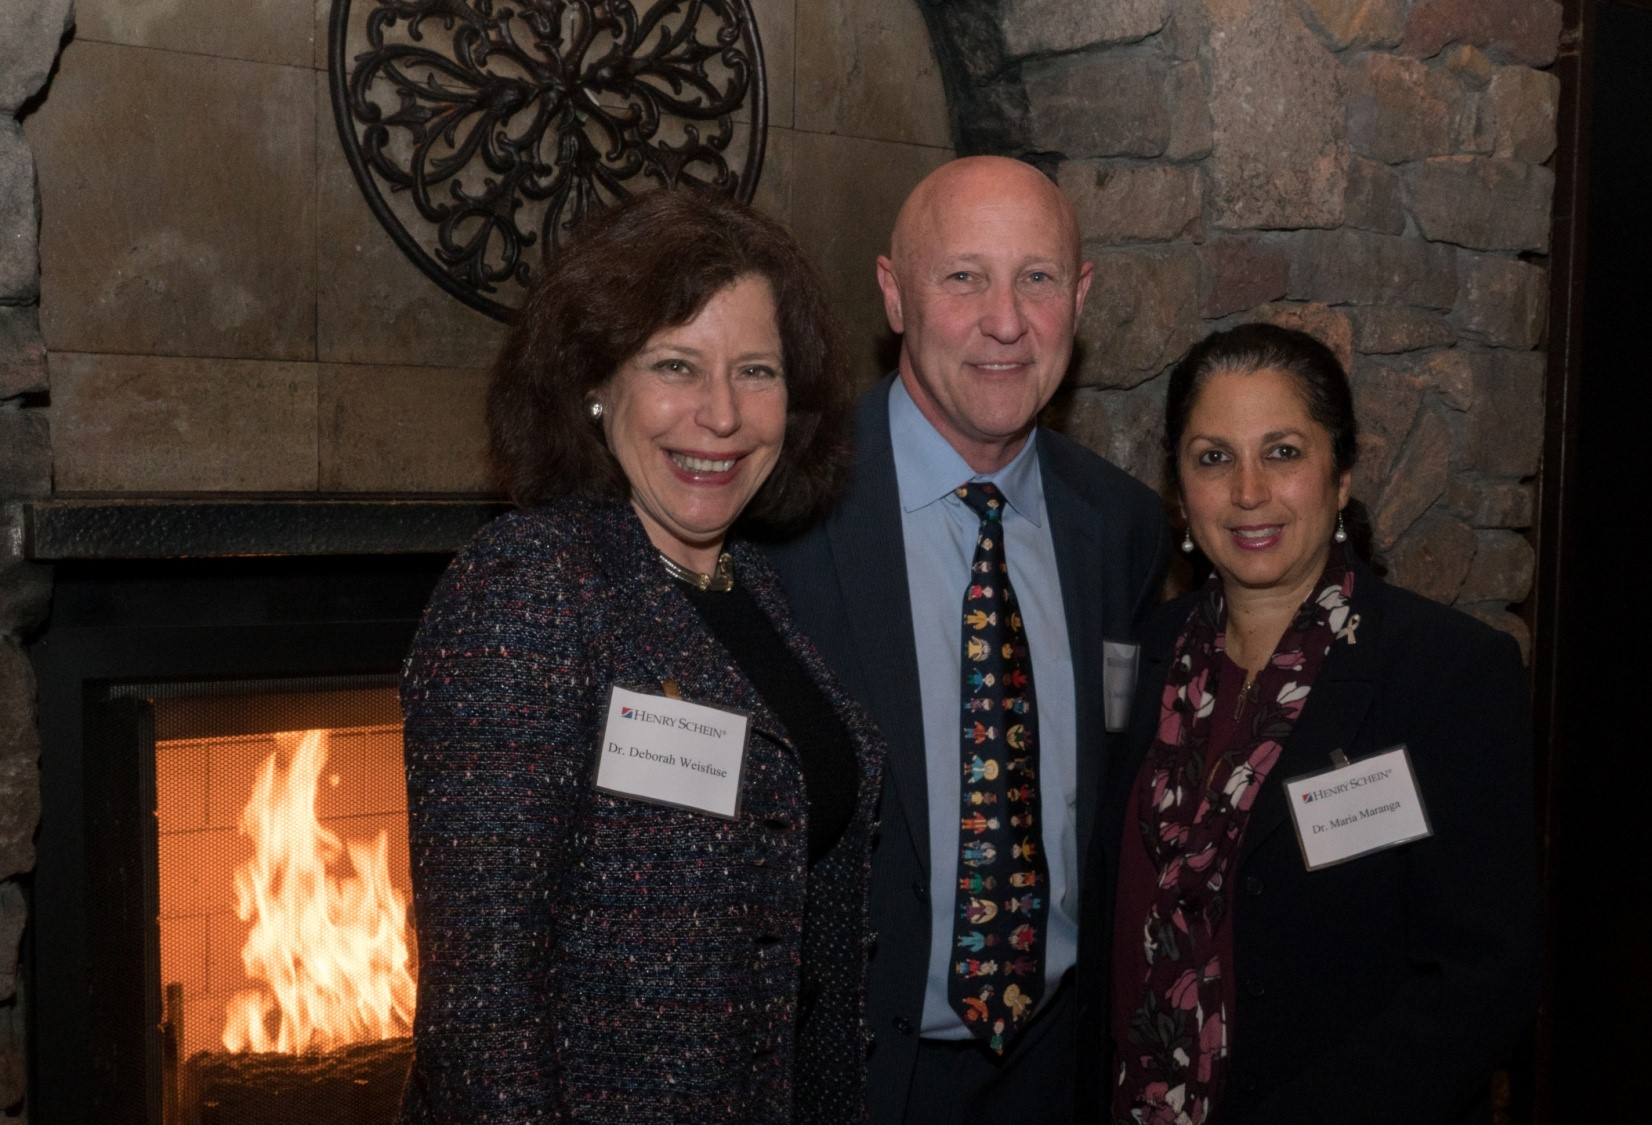 [L-R] Dr. Deborah Weinfuse of the New York State Dental Society with Dr. Joe Brofsky, Section Head of the Department of Pediatric Dentistry at North Shore LIJ Cohen Children's Hospital, and Dr. Maria Maranga of New York University Dentistry, enjoy a moment at the Project Accessible Oral Health Day 1 dinner.